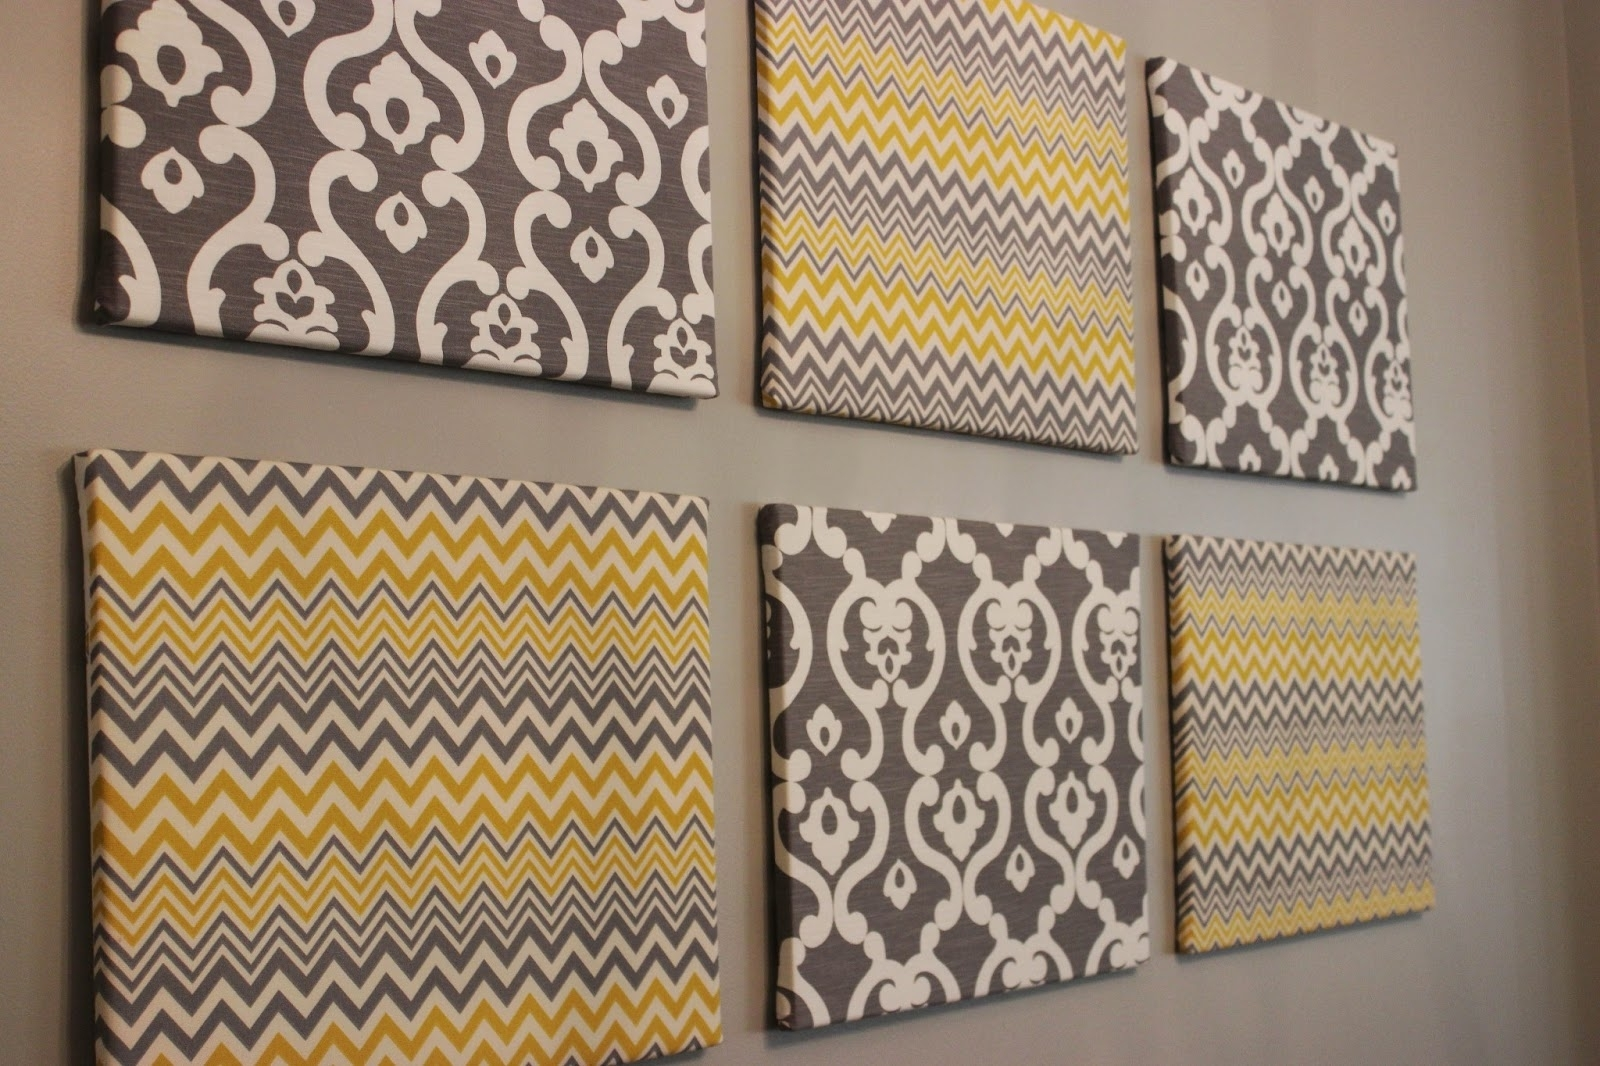 Art: Diy Canvas Wall Art Ideas Within Favorite High End Fabric Wall Art (Gallery 10 of 15)